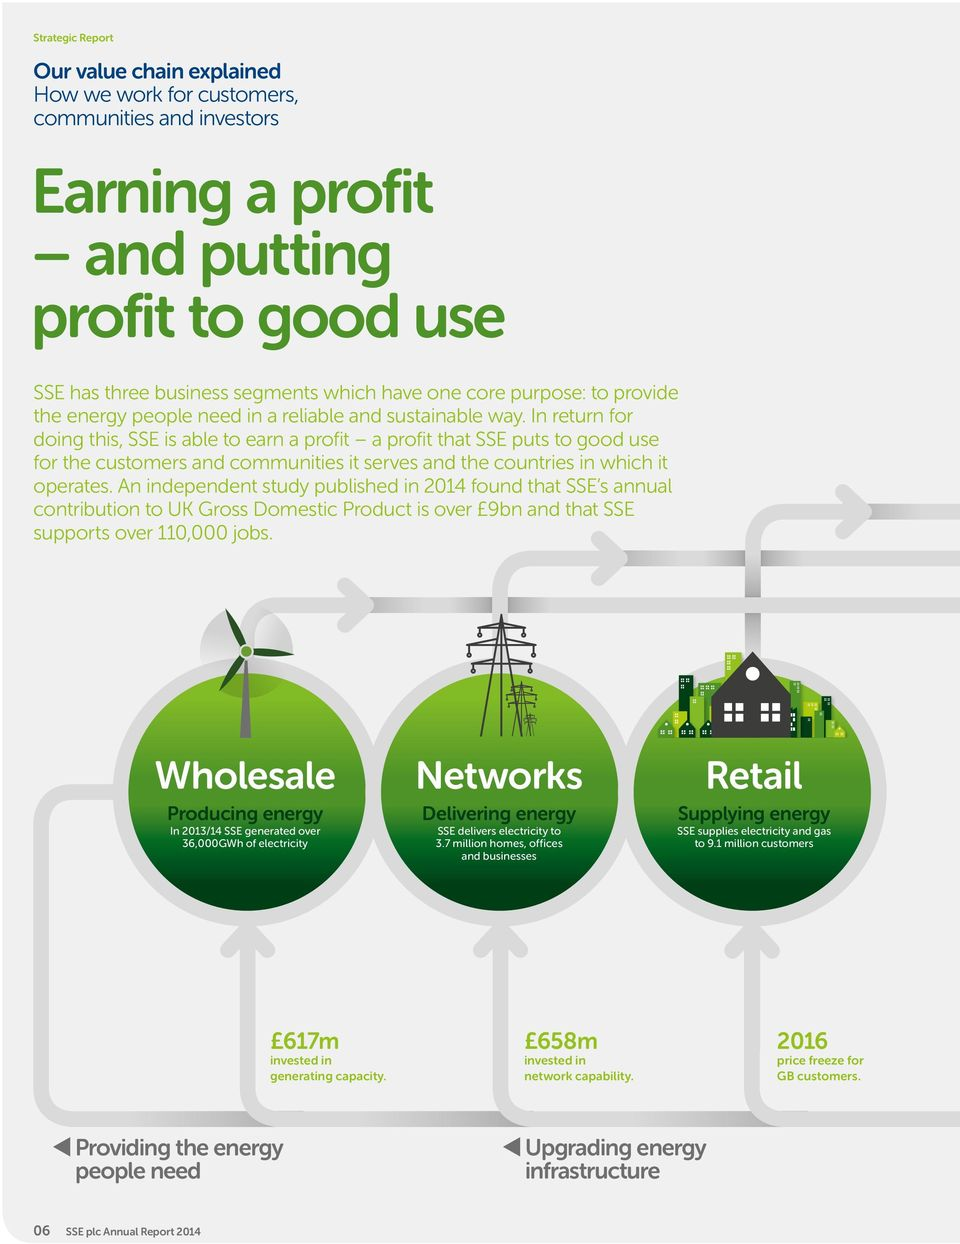 In return for doing this, SSE is able to earn a profit a profit that SSE puts to good use for the customers and communities it serves and the countries in which it operates.